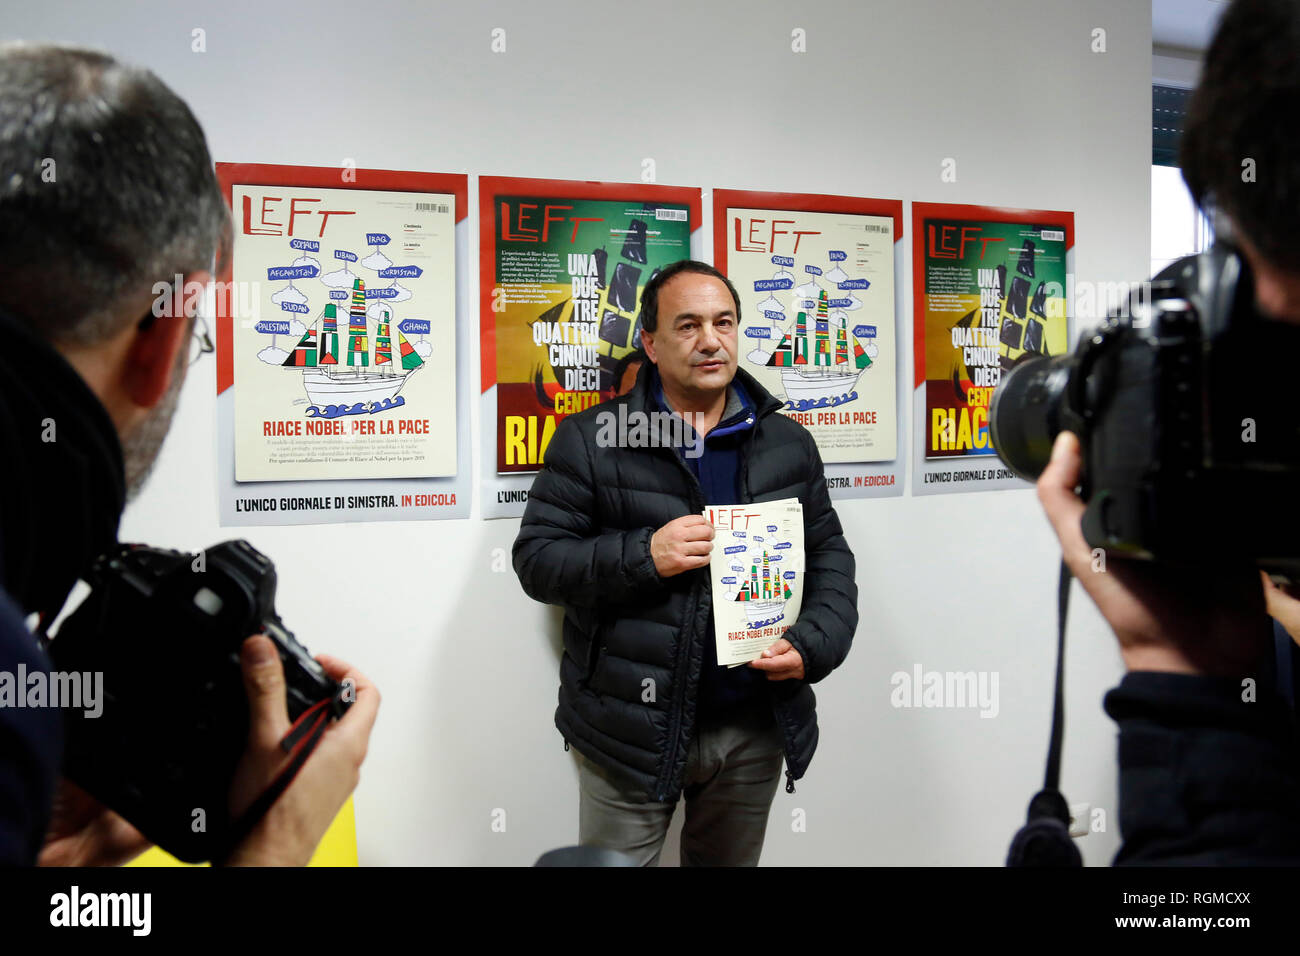 Domenico (Mimmo) Lucano, Mayor of Riace Rome January 30th 2019. Press conference in occasion of the end of the petition for the candidacy of Mimmo Lucano for Nobel Peace Prize.  The mayor of Riace, made headlines around the world for his unusual programme that welcomed migrants to the sparsely-populated town in Calabria, giving them abandoned homes and on-the-job training, in the hope that the new arrivals would rejuvenate the economy. Domenico Lucano, waiting for judgment, was detained last October over his alleged involvement in organizing 'marriages of convenience' for immigration purposes. - Stock Image